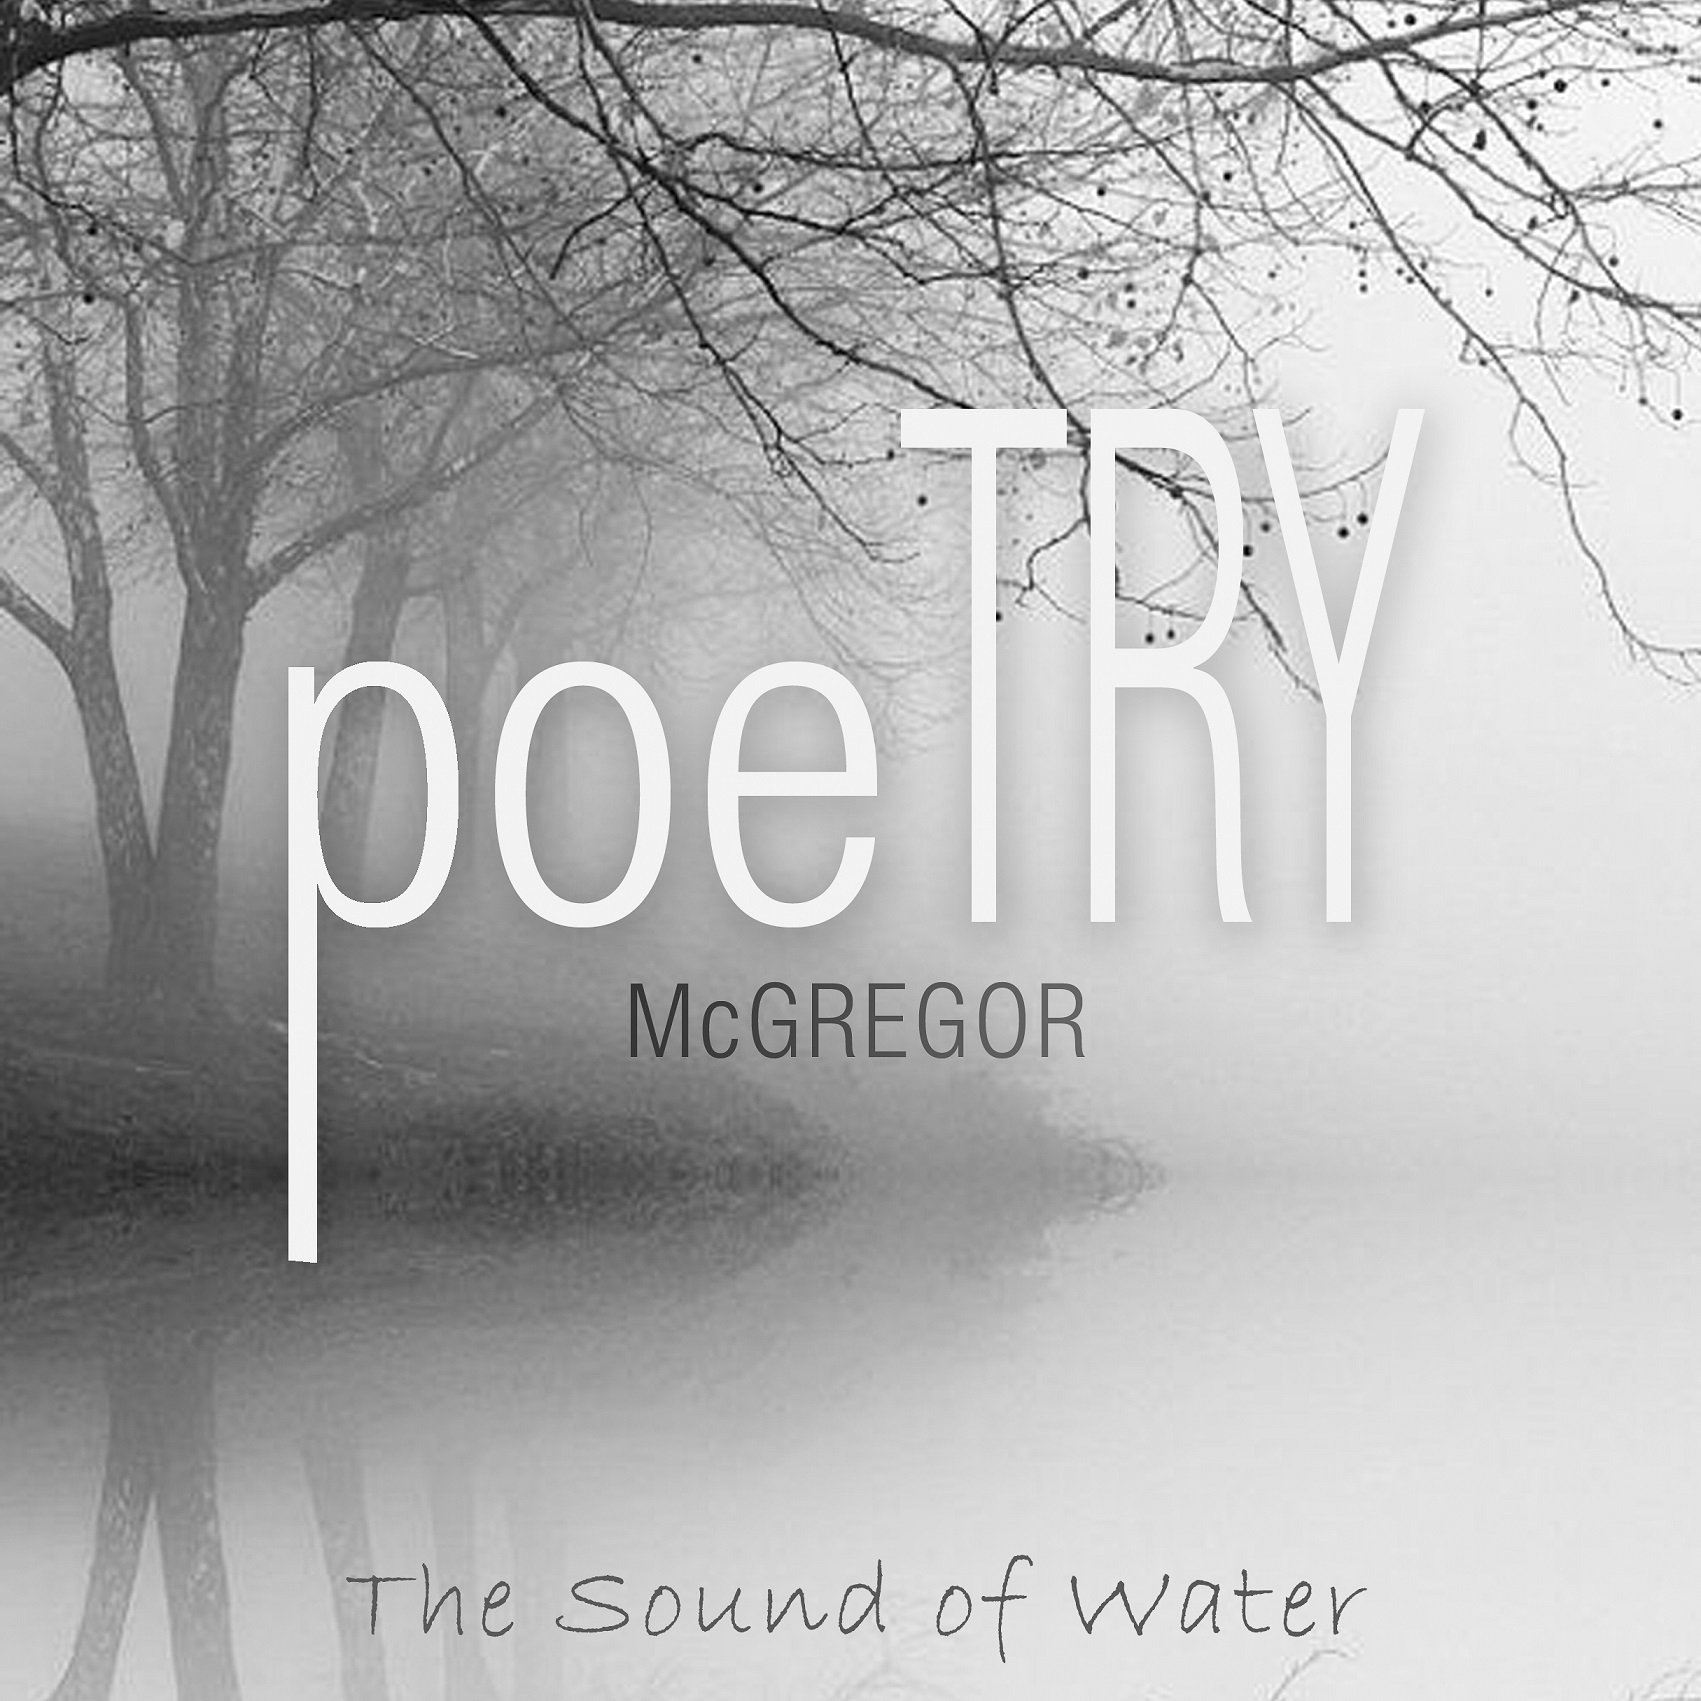 The Poetry in McGregor Festival's Poetry Competition is Open For Entries